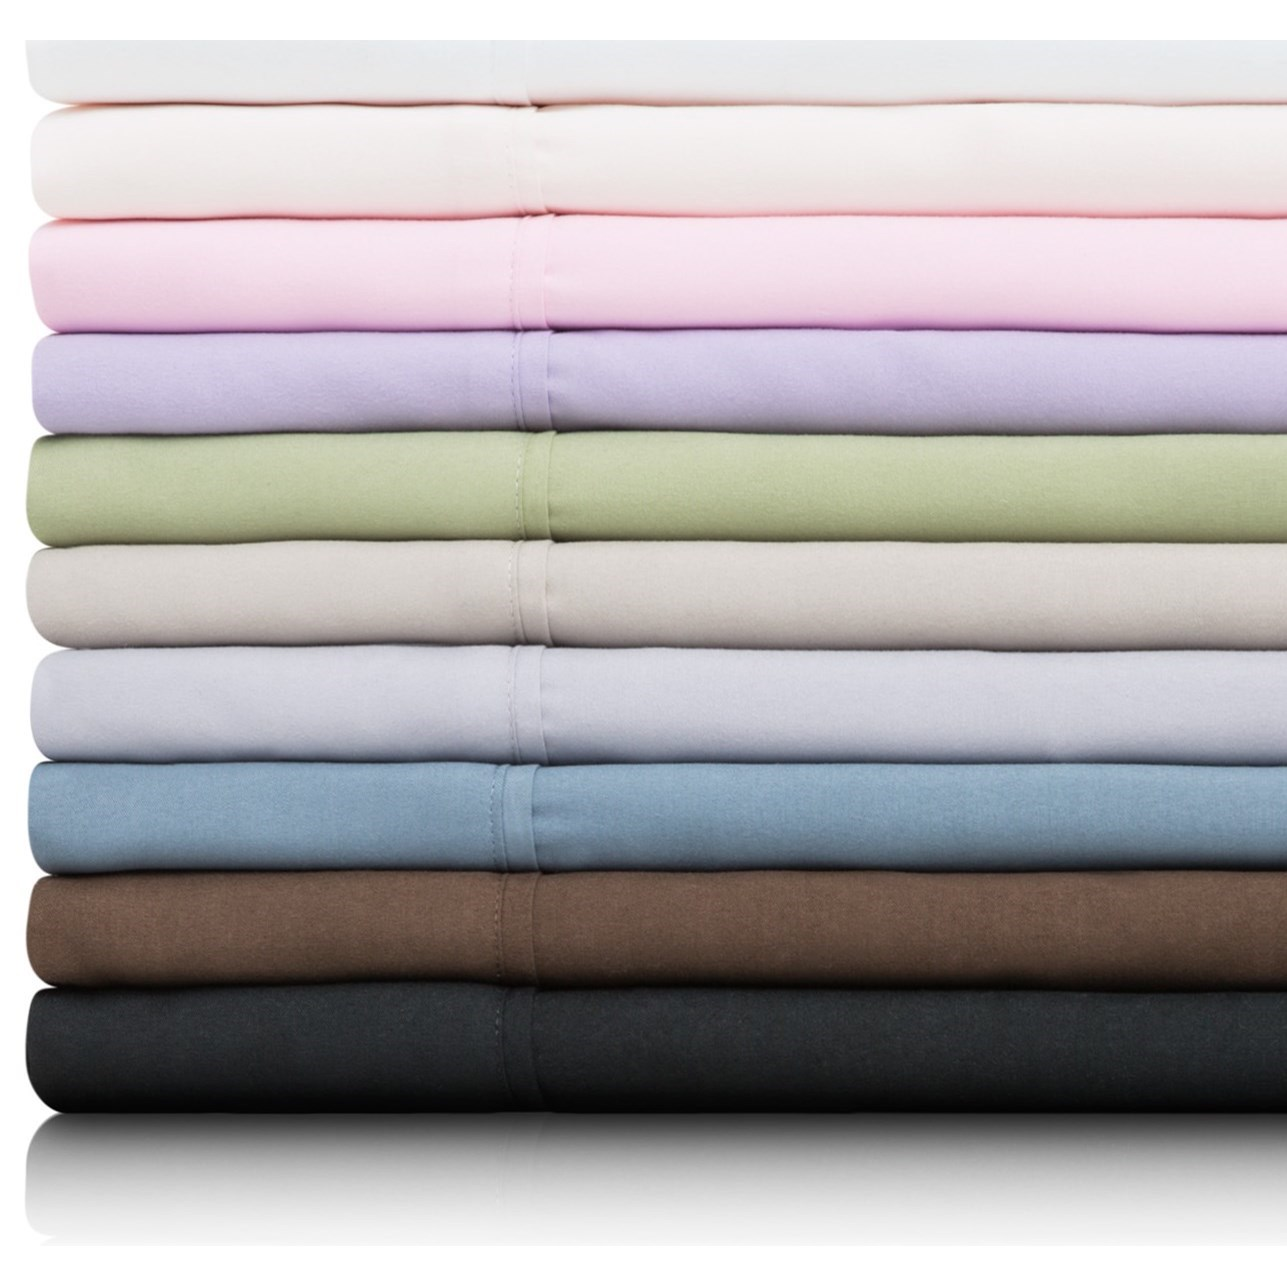 Malouf Brushed Microfiber Queen Woven™ Brushed Microfiber Pillowcases  - Item Number: MA90QQFEPC